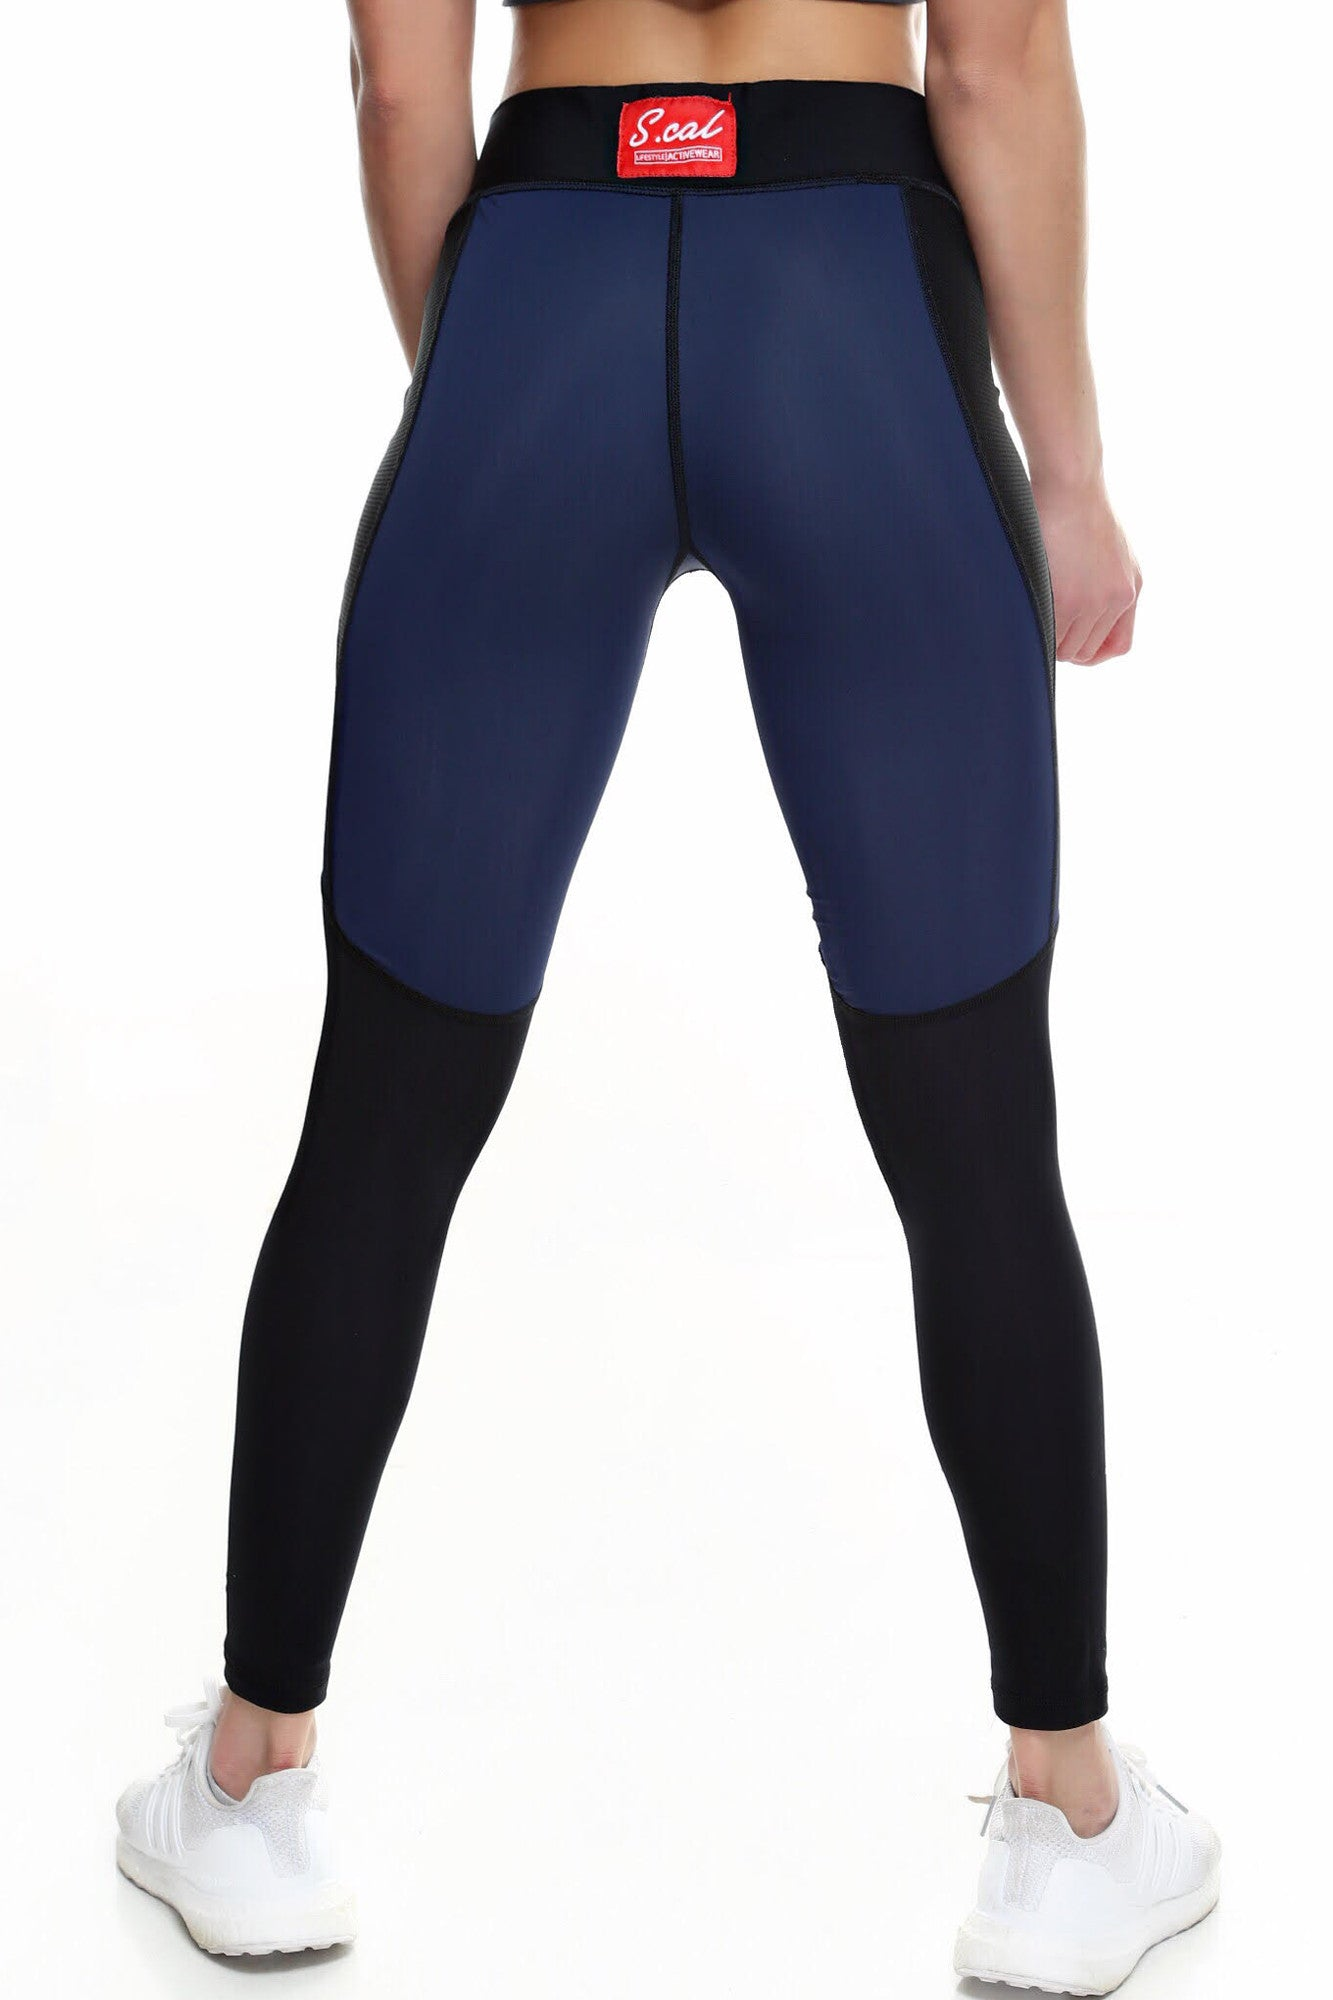 Women's Signature Leggings - Navy Blue - Scal Clothing